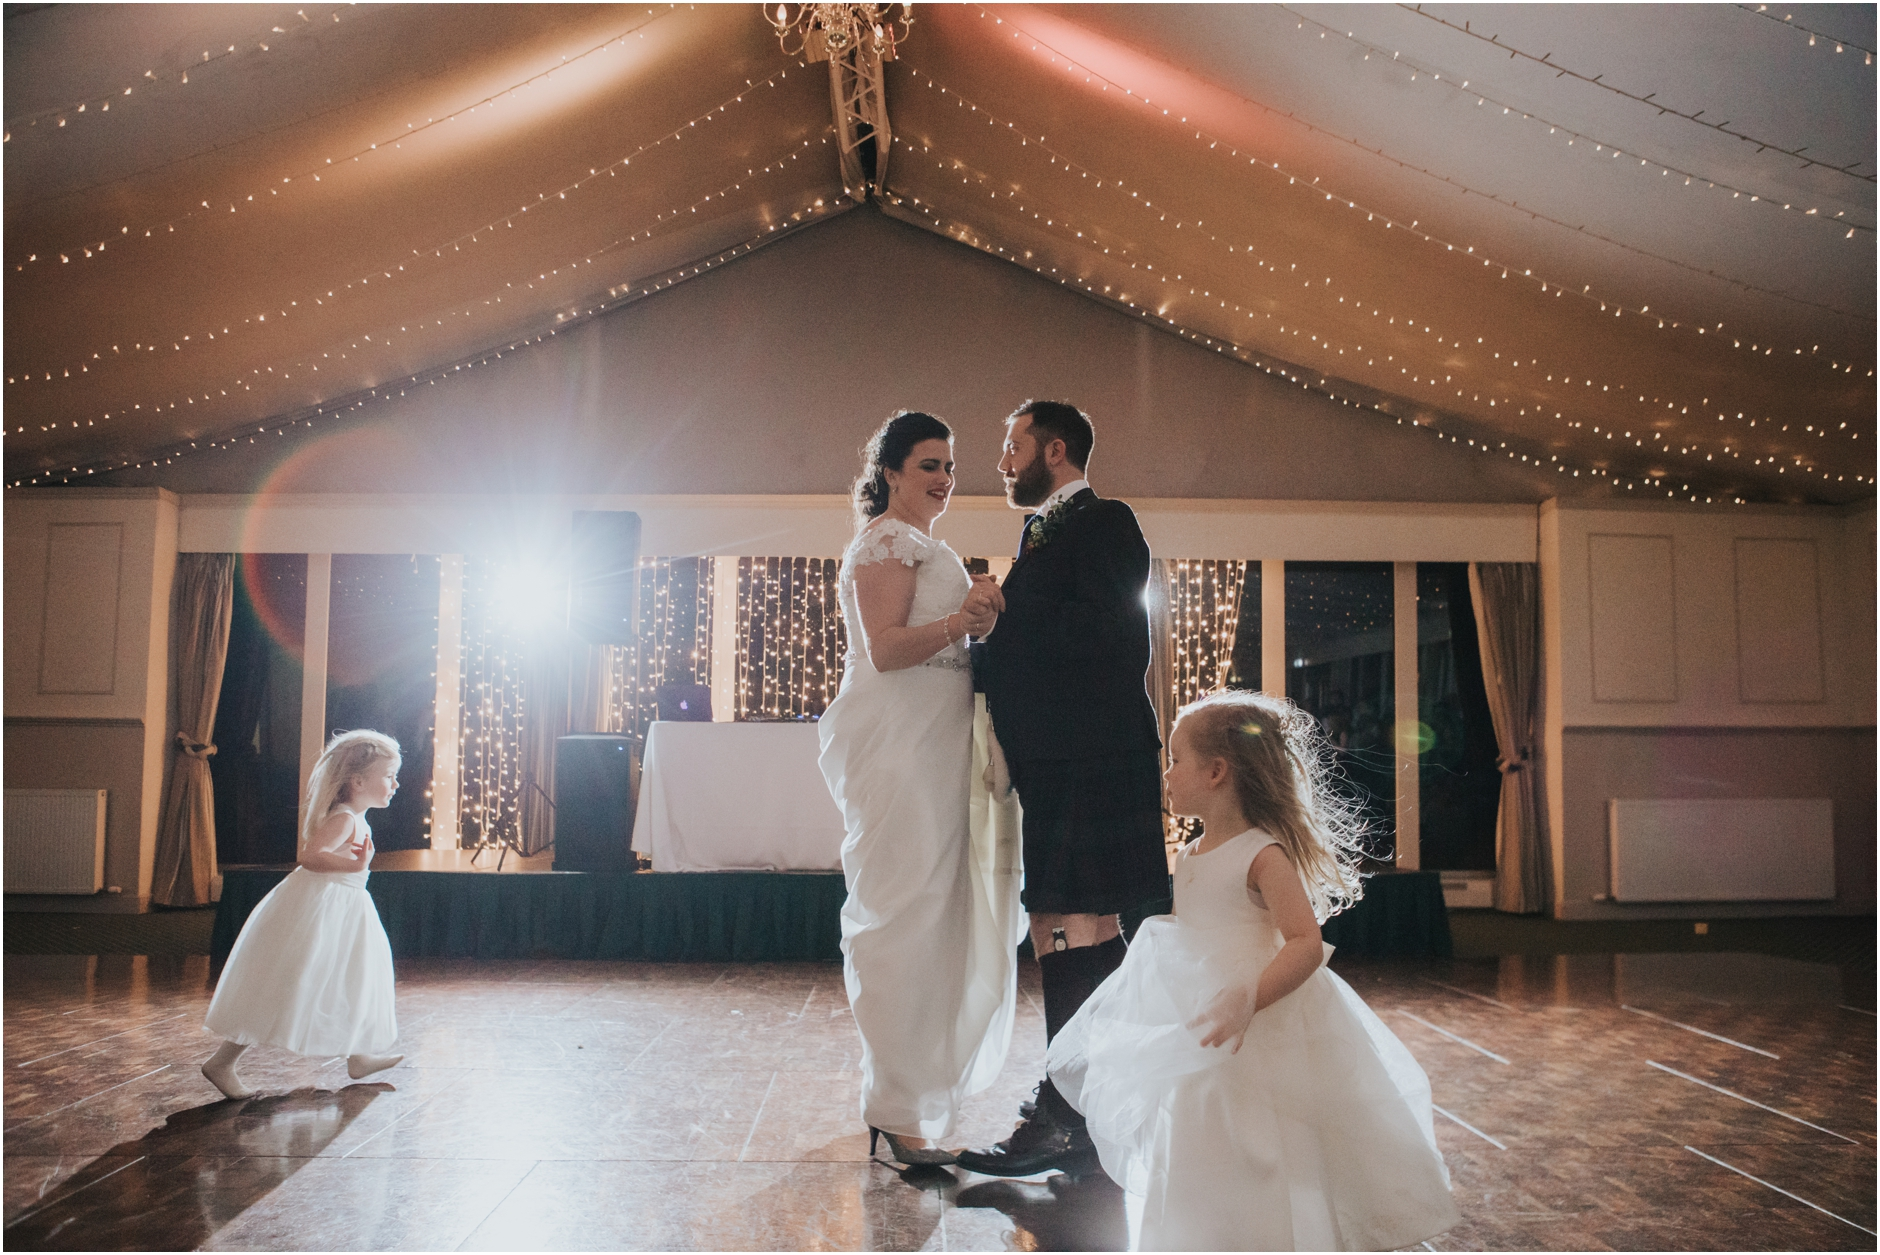 dundas castle wedding winter edinburgh first dance